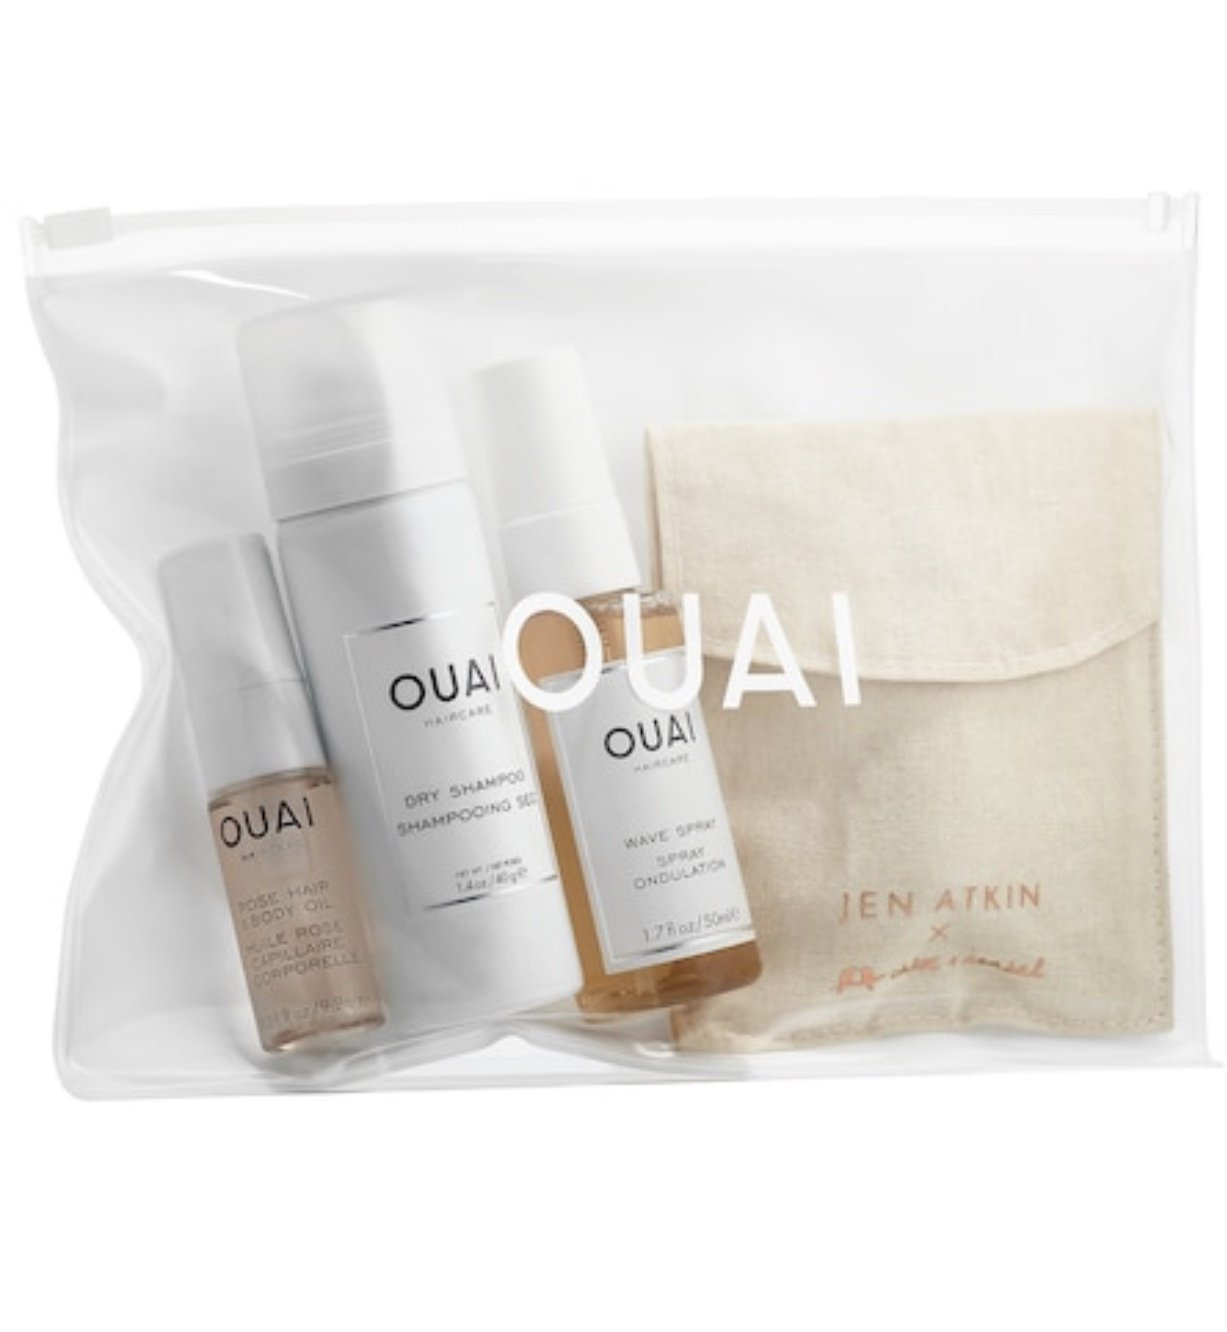 Ouai Desert OUAIsis Festival Kit: Rose Hair & Body Oil, Dry Shampoo Foam, Wave Spray, Jen Atkin x Chloe + Isabel Ponytail Piece (Limited Edition) by Ouai (Image #3)